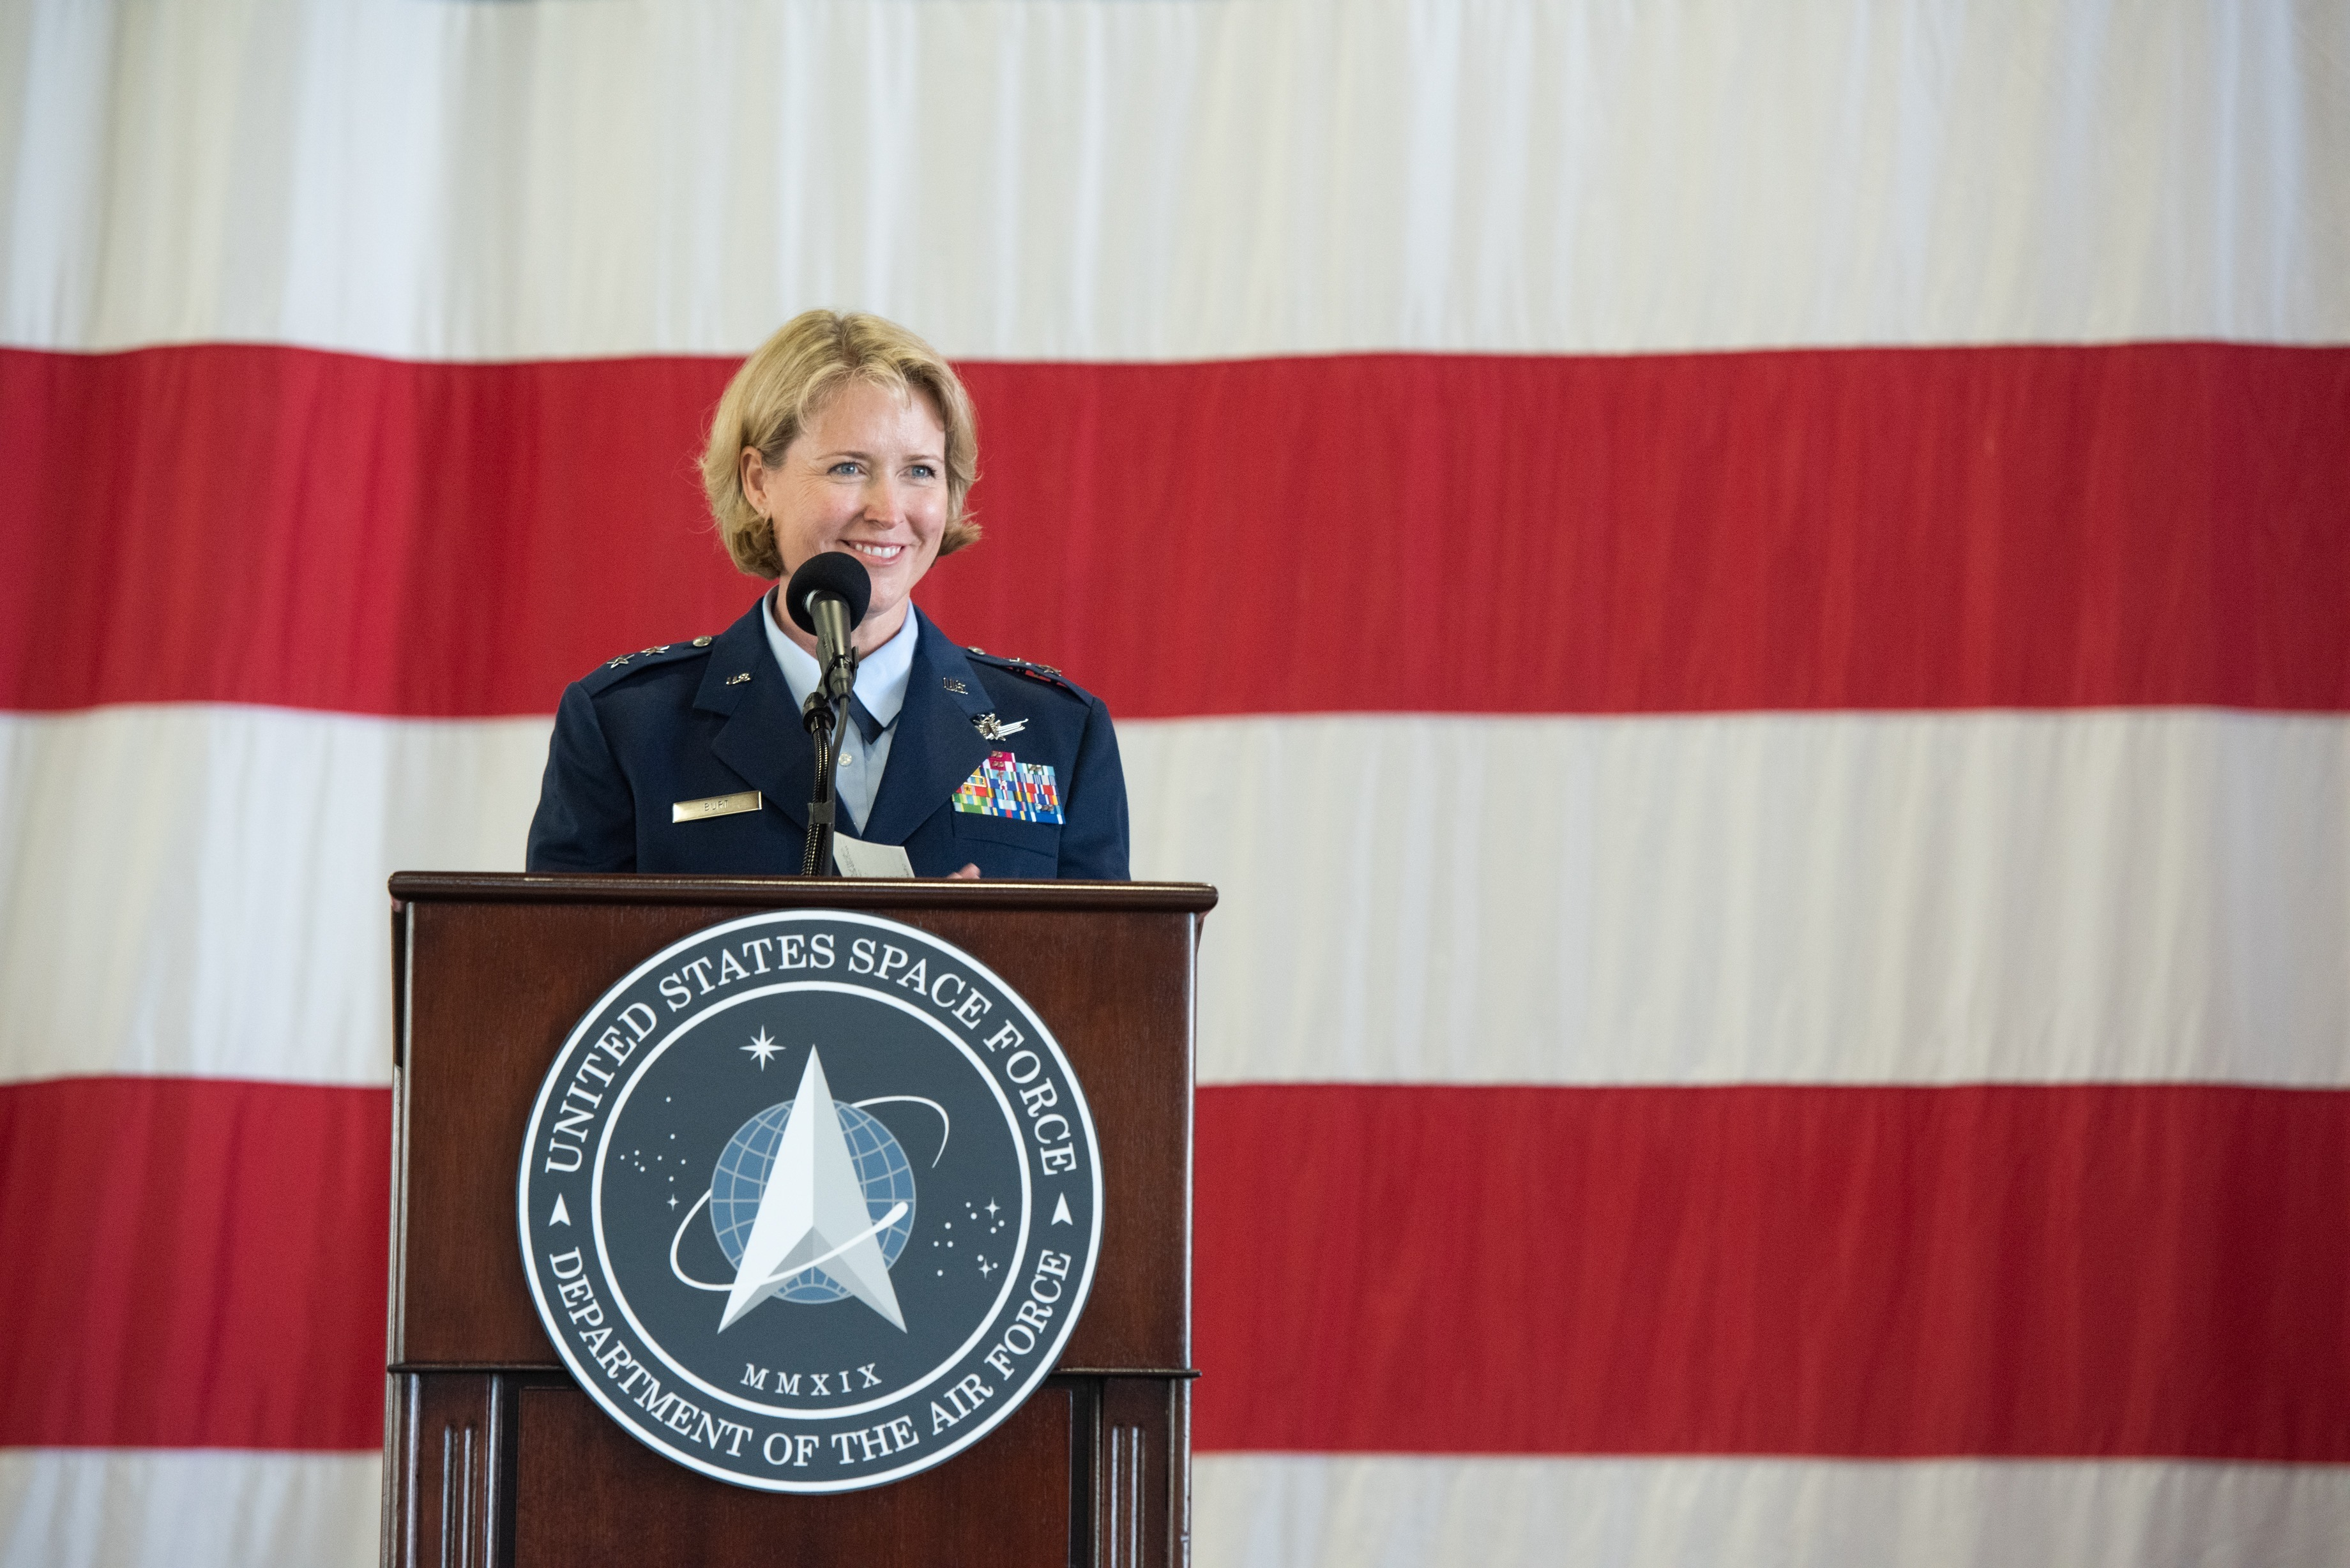 Maj. Gen. DeAnna Burt, commander of the Combined Force Space Component Command, discussed diversification among missile warning suppliers and the need for satellite software that can be reprogrammed quickly to adjust to threats. (U.S. Space Force / 2nd Lt. Idalí Beltré Acevedo).